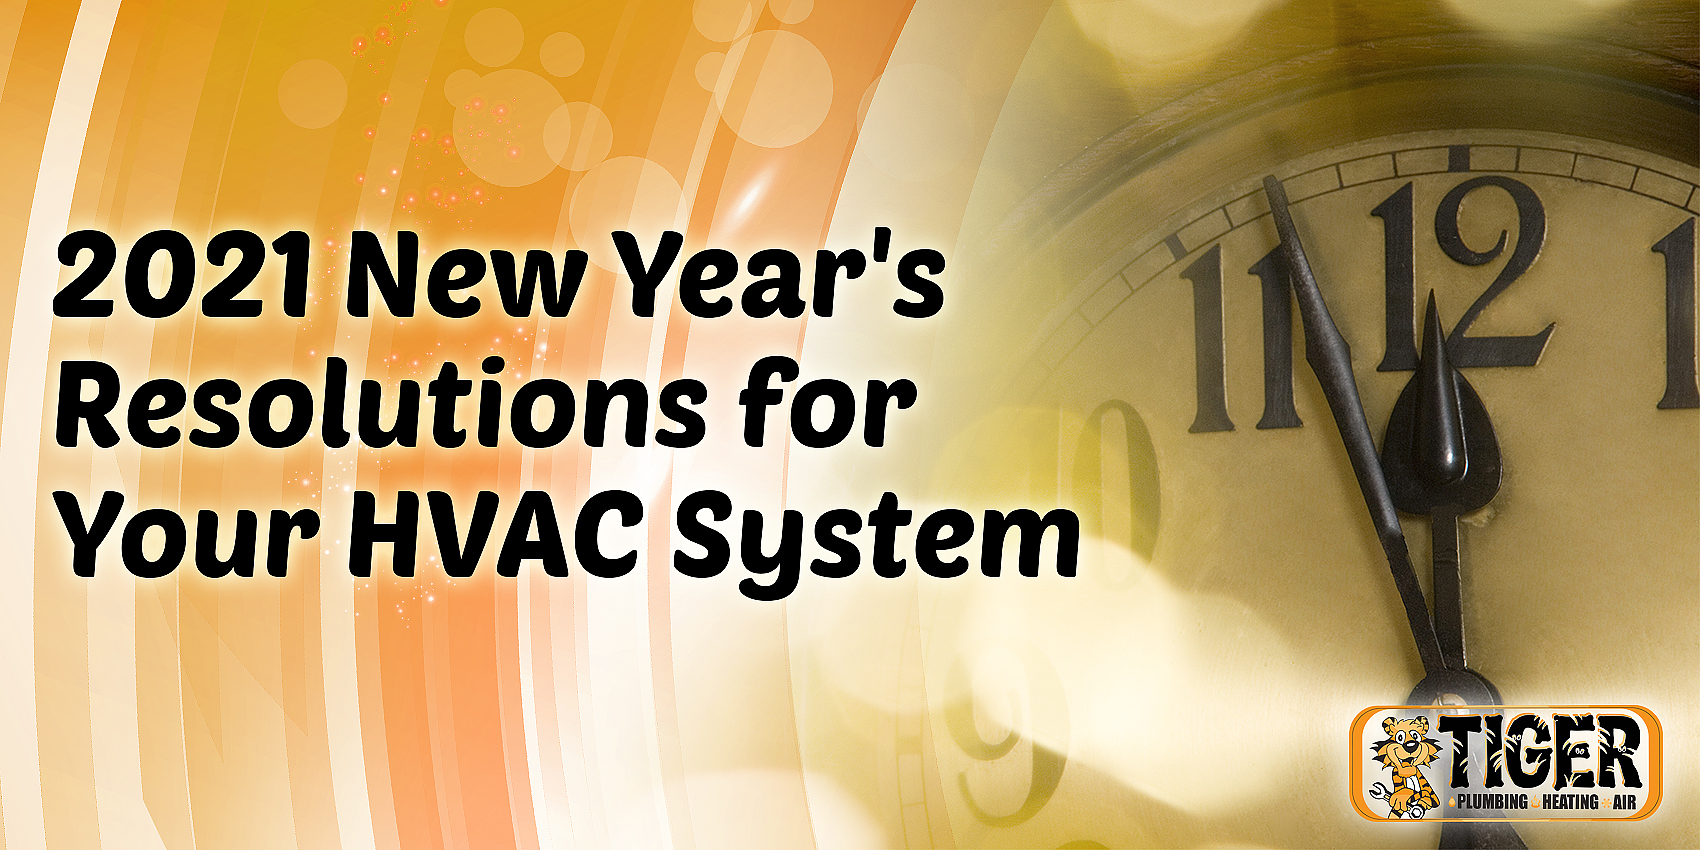 2021 New Year's Resolutions for Your HVAC System